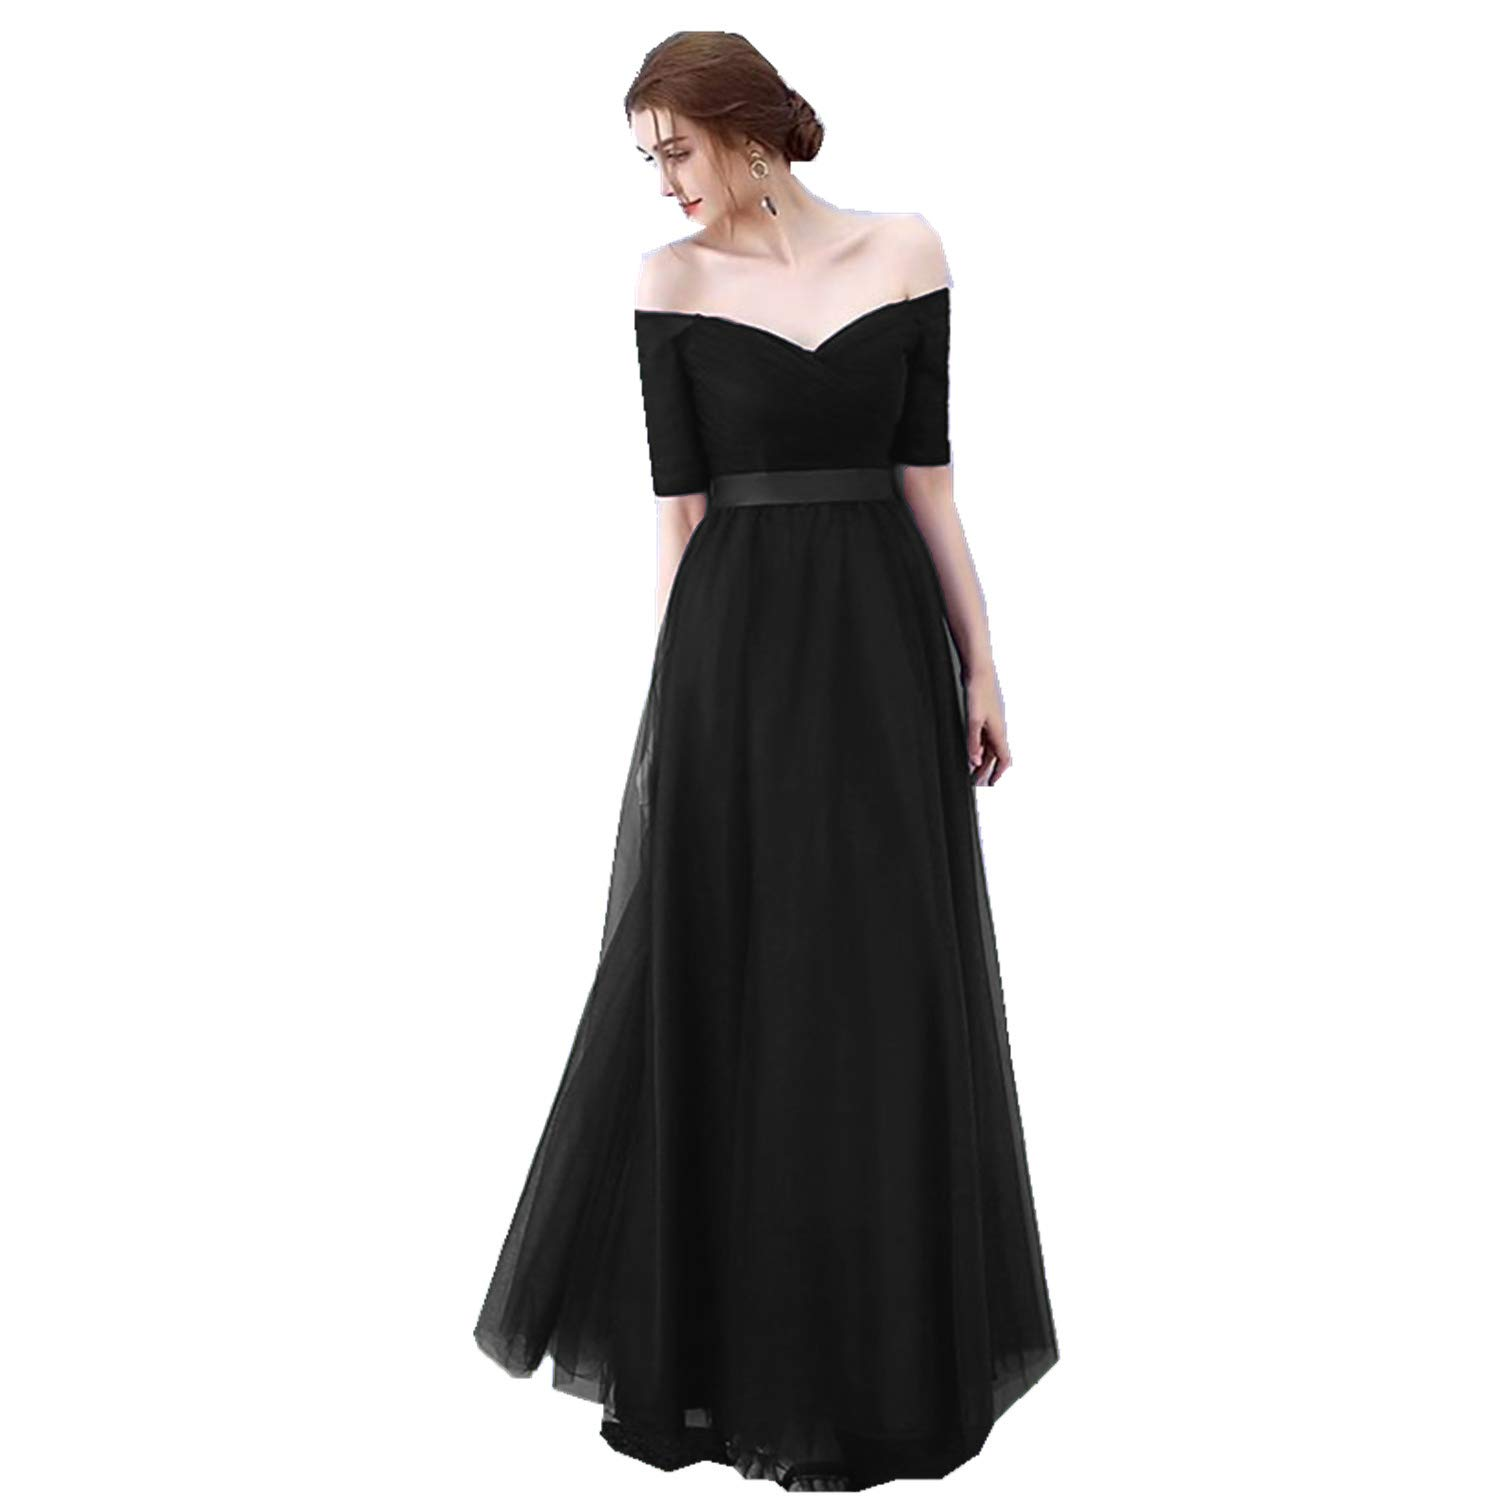 Black Ruiyuhong Women's VNeck Off The Shoulder Bridesmaid Dresses Long Tulle Wedding Party Gown